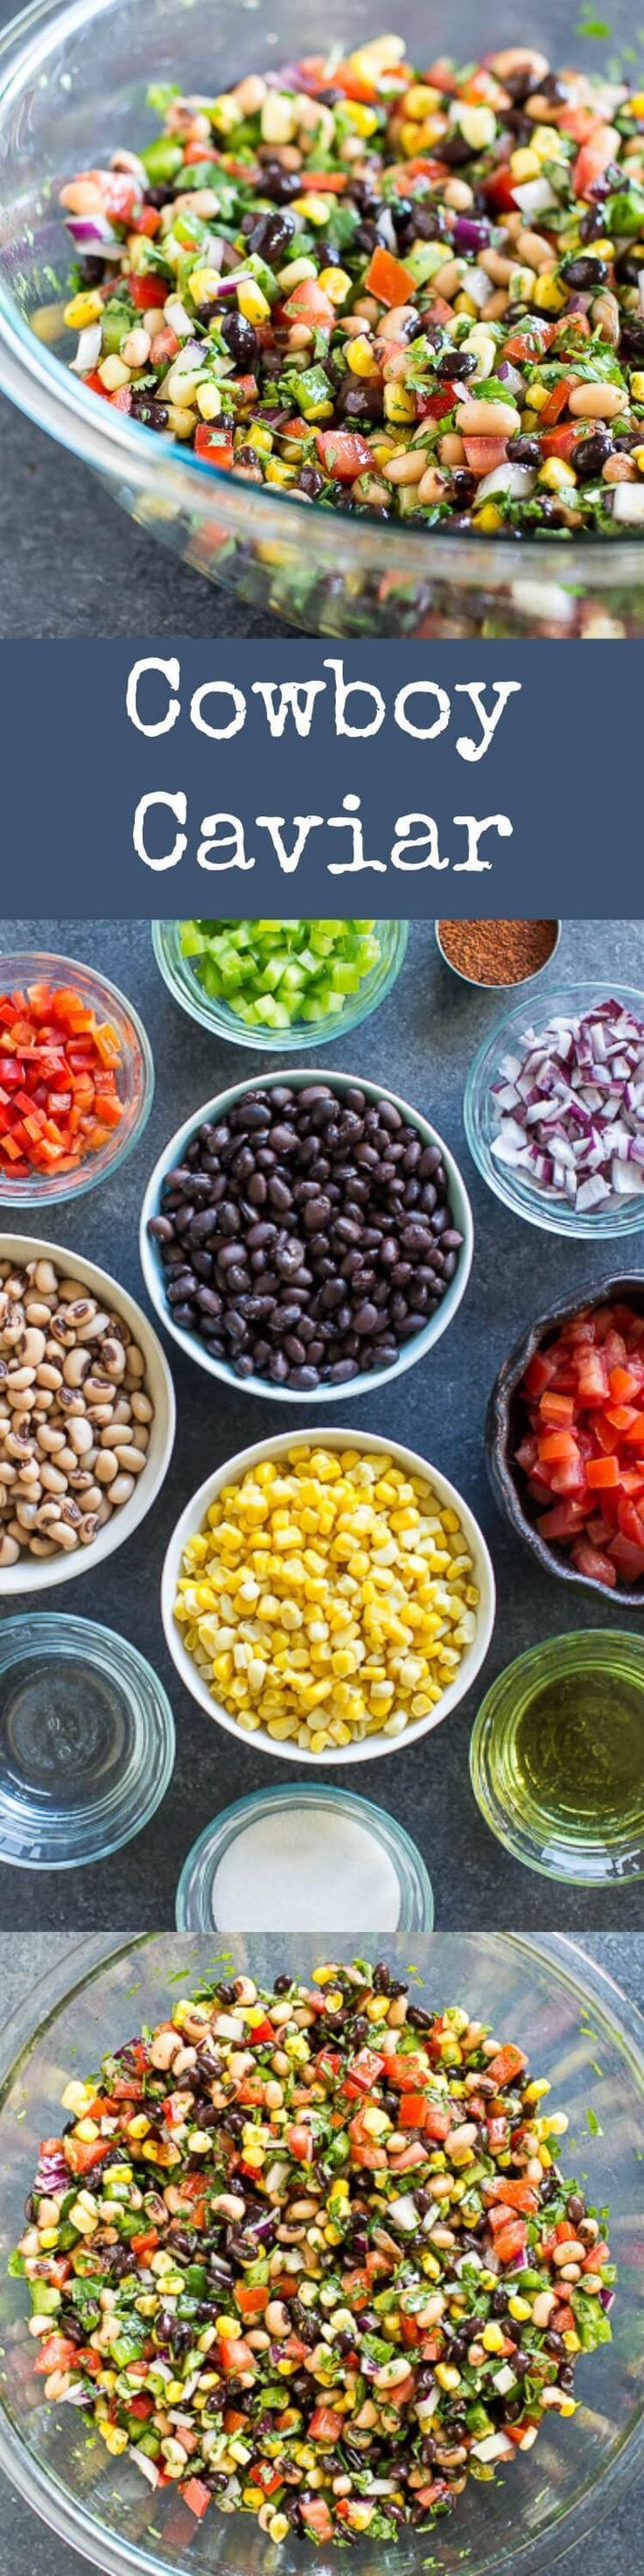 Cowboy Caviar is packed with colorful, fresh ingredients that also ...